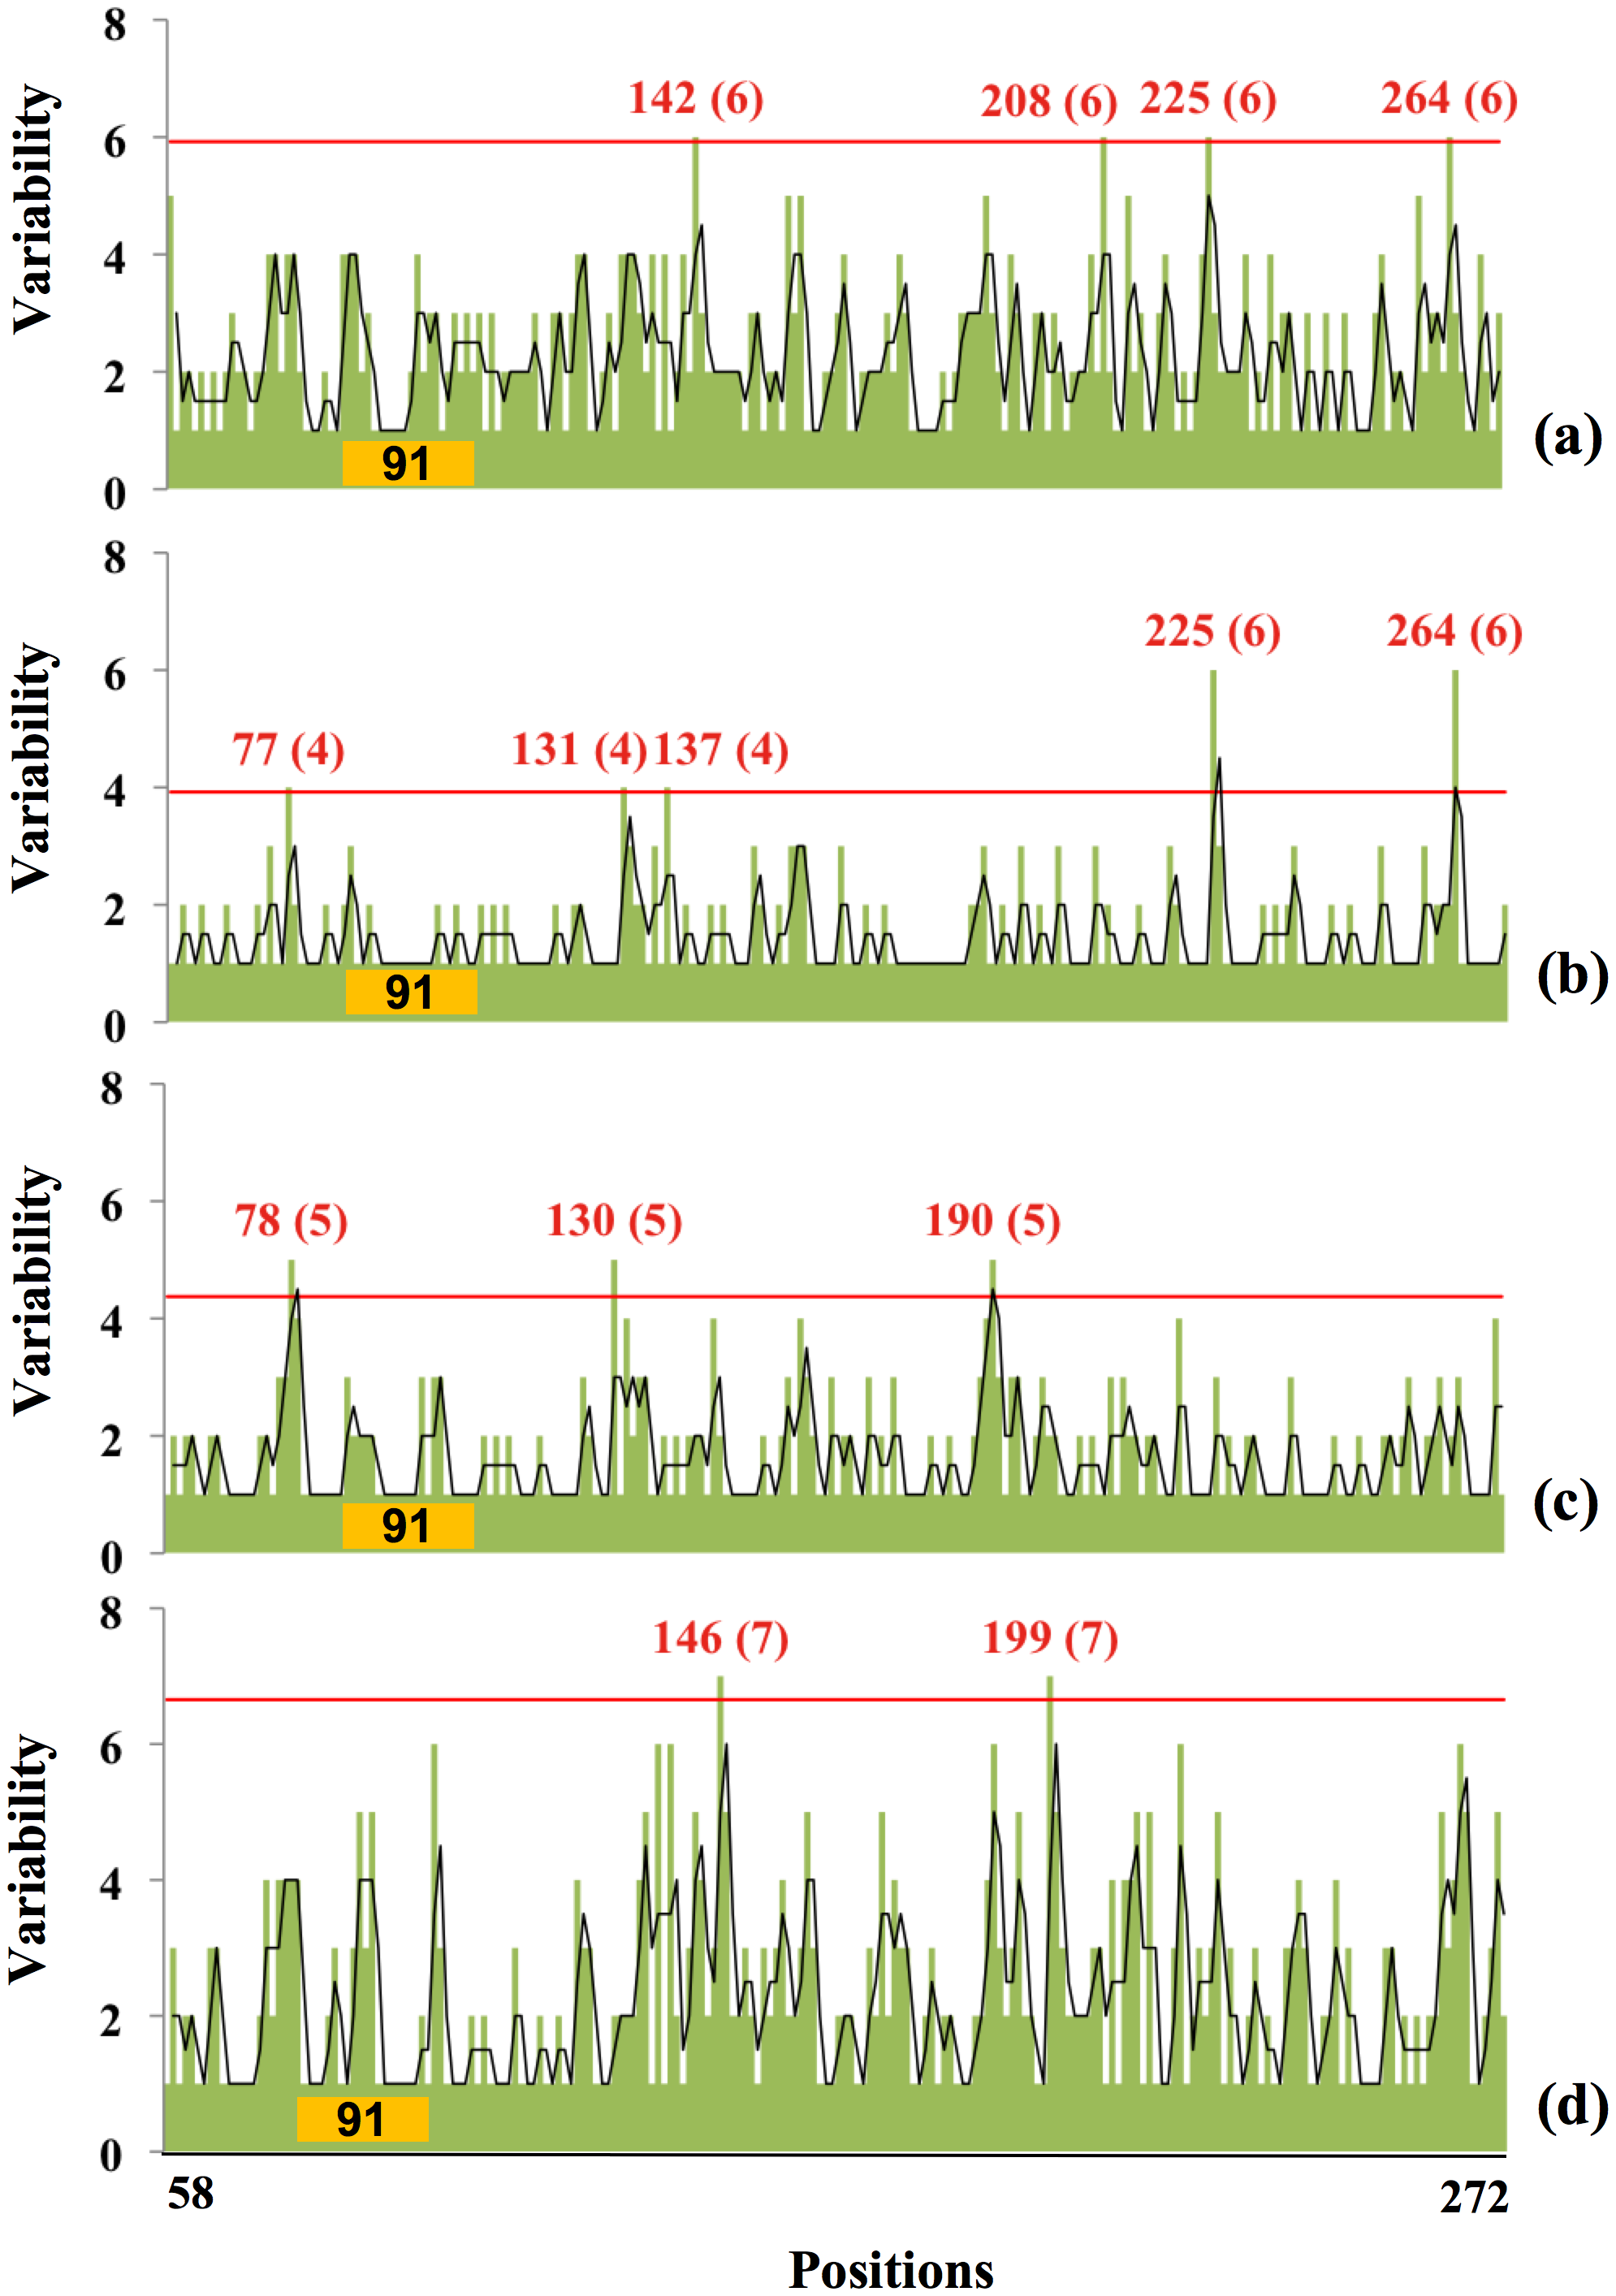 Relationship between amino acid variability and presence of glycosylation sites in Swine H1 globular domain.